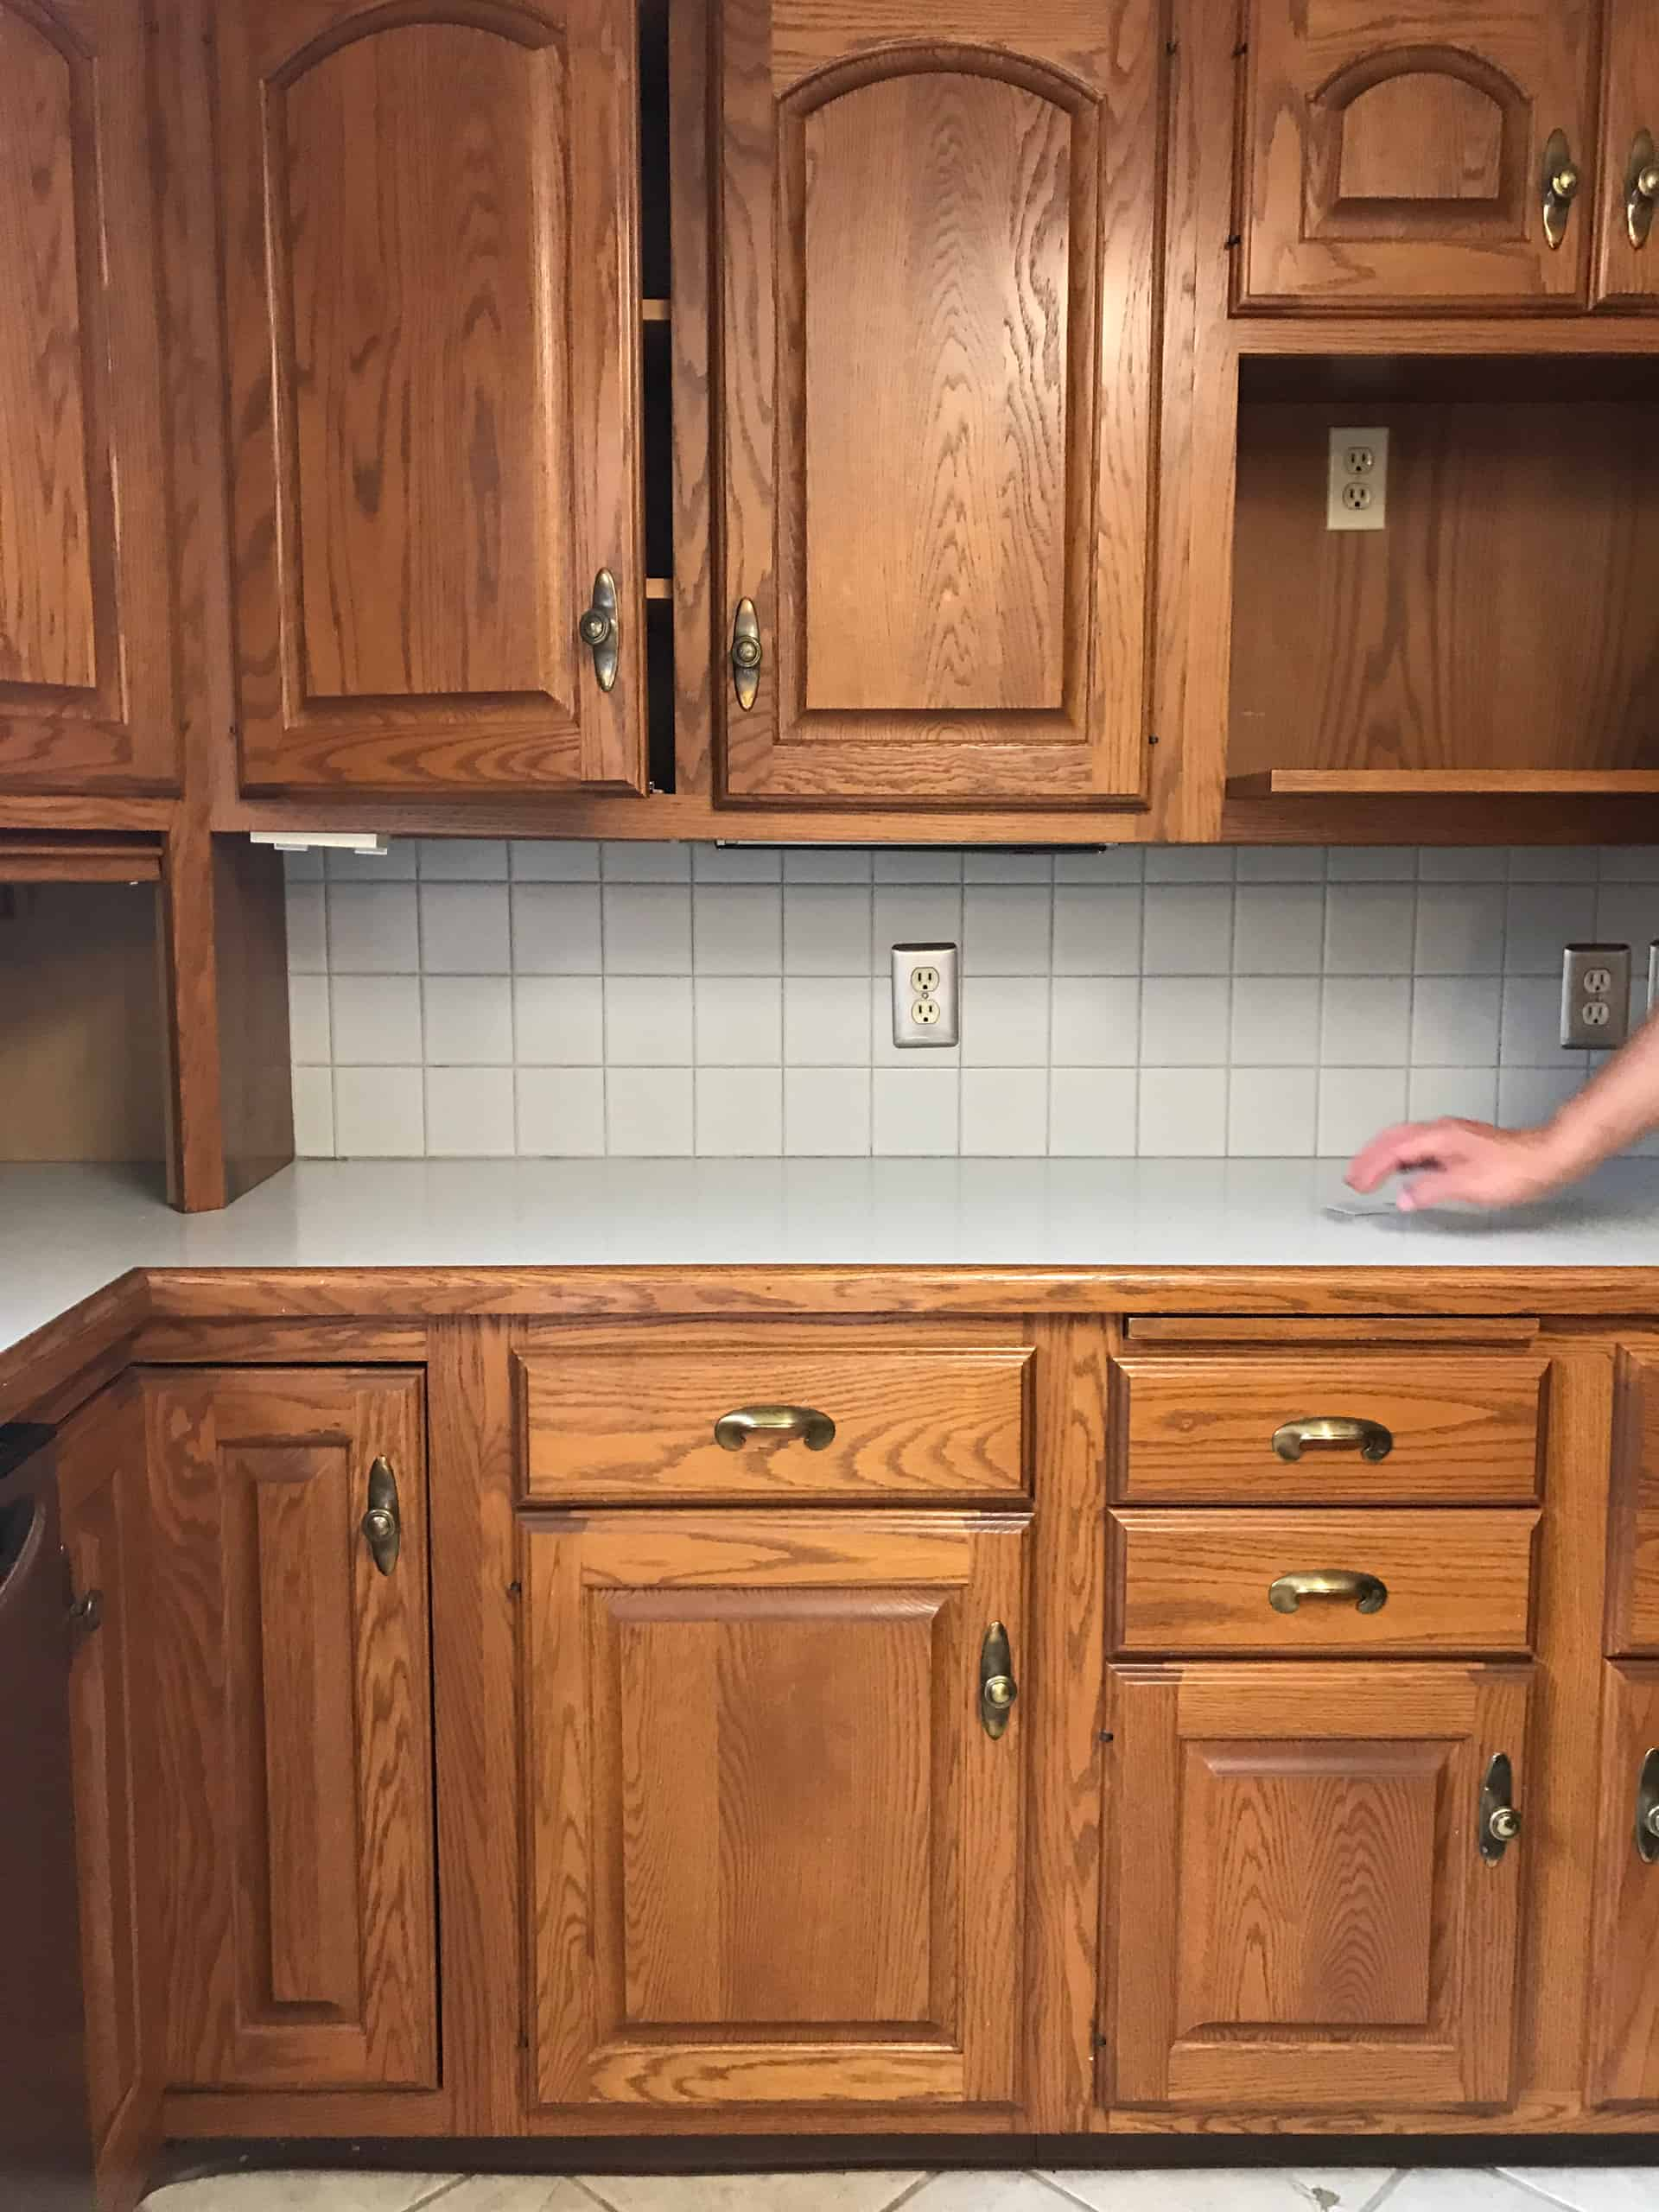 Painting kitchen cabinets with annie sloans chalk paint